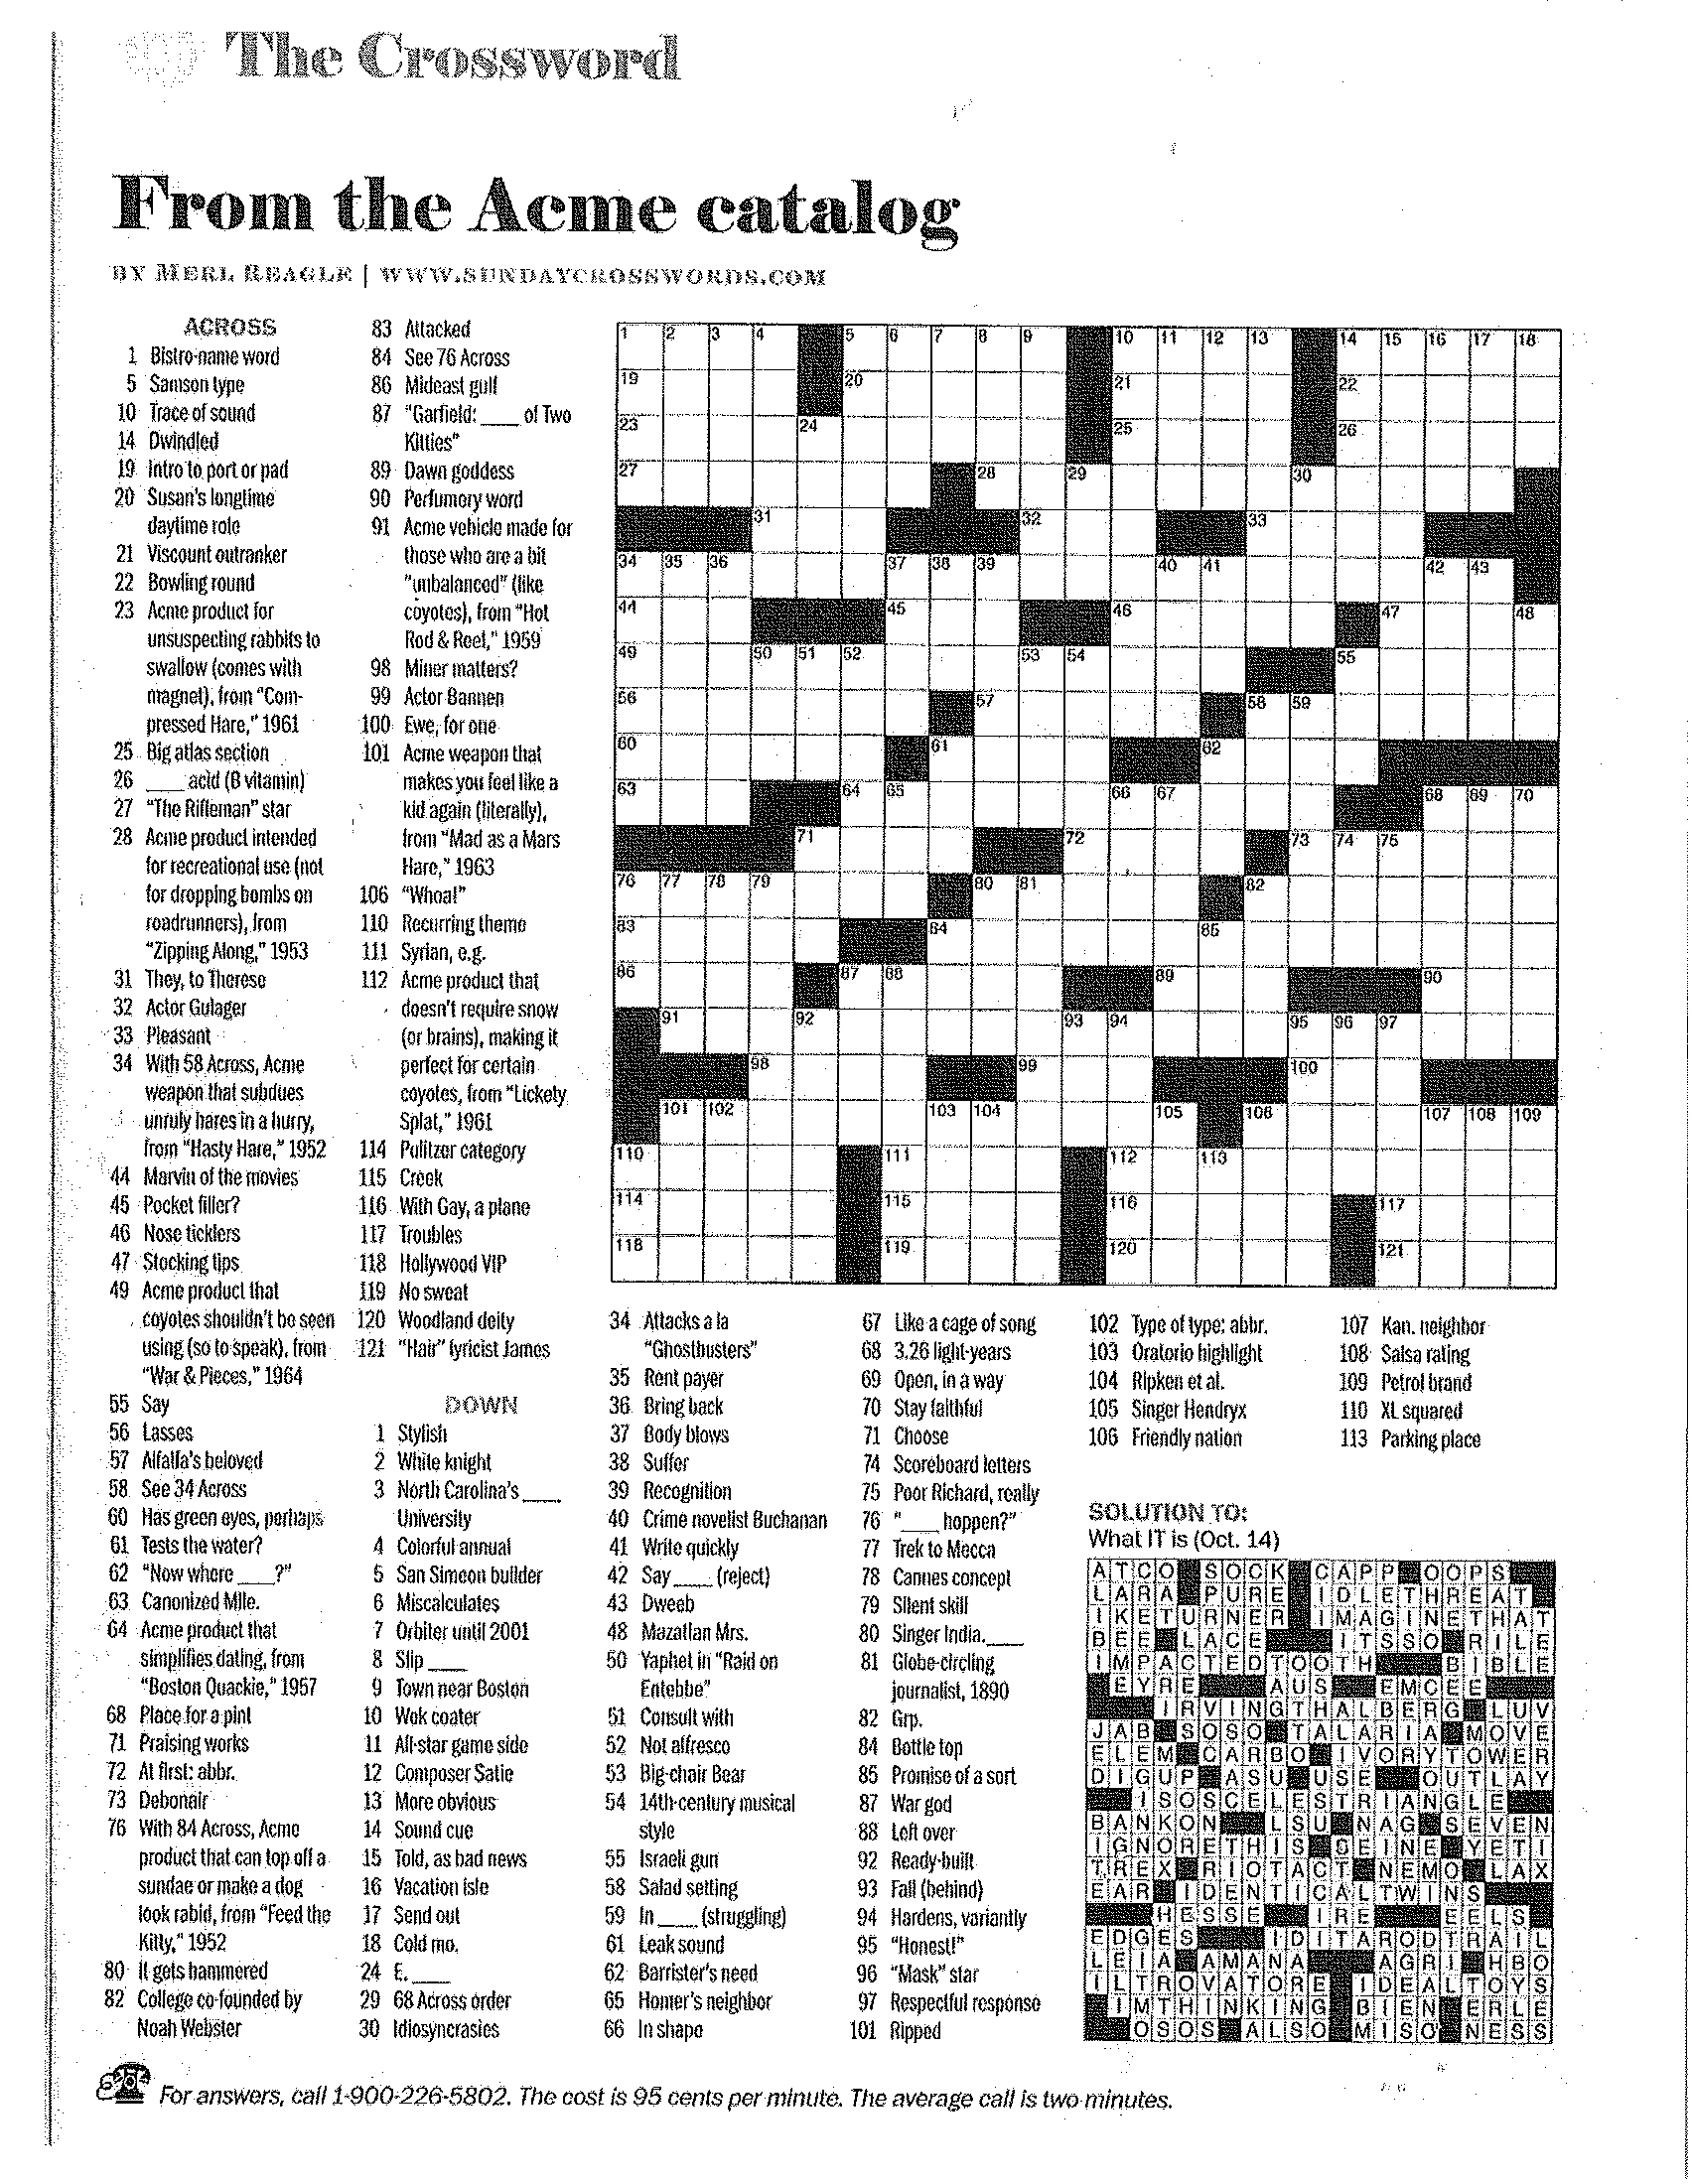 Printable Crossword Puzzles Merl Reagle | Download Them Or Print - Merl Reagle Printable Crossword Puzzles